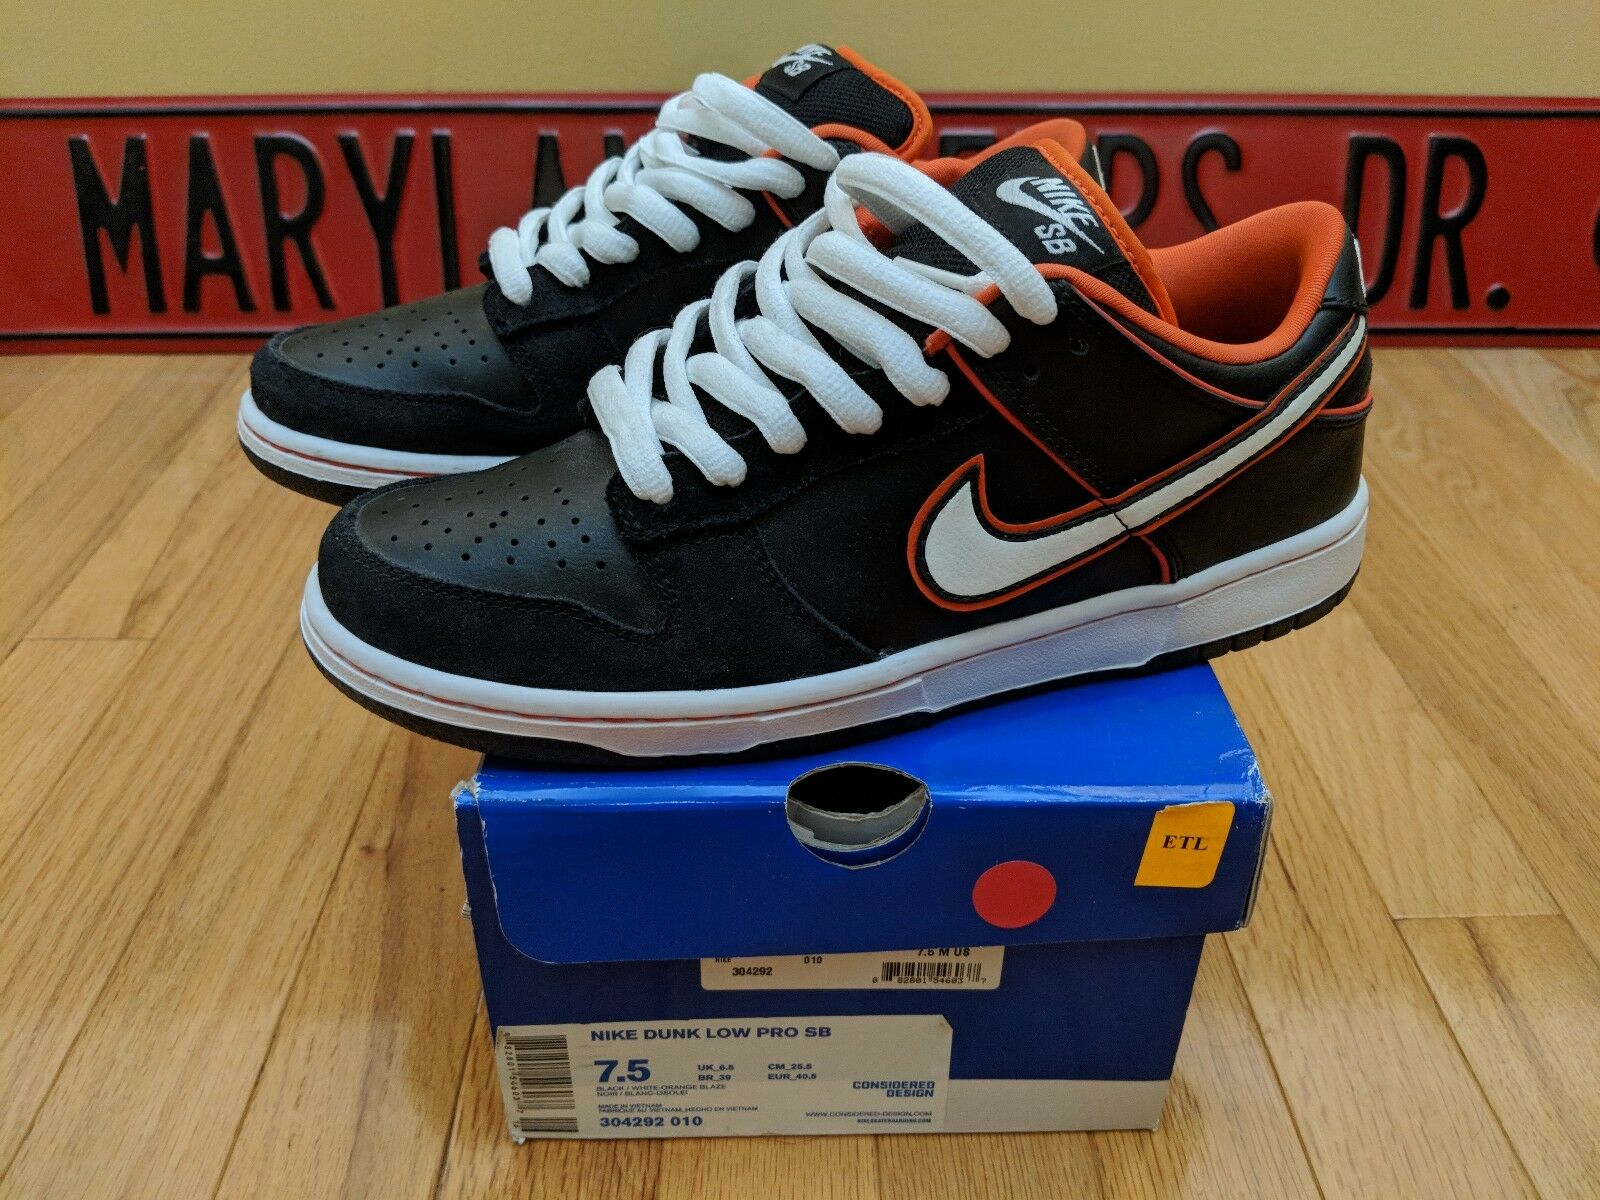 Nike Dunk Low Pro SB Giants Size Orange Blaze 304292-010 Mens Size Giants 7.5 Rare VNDS 093203